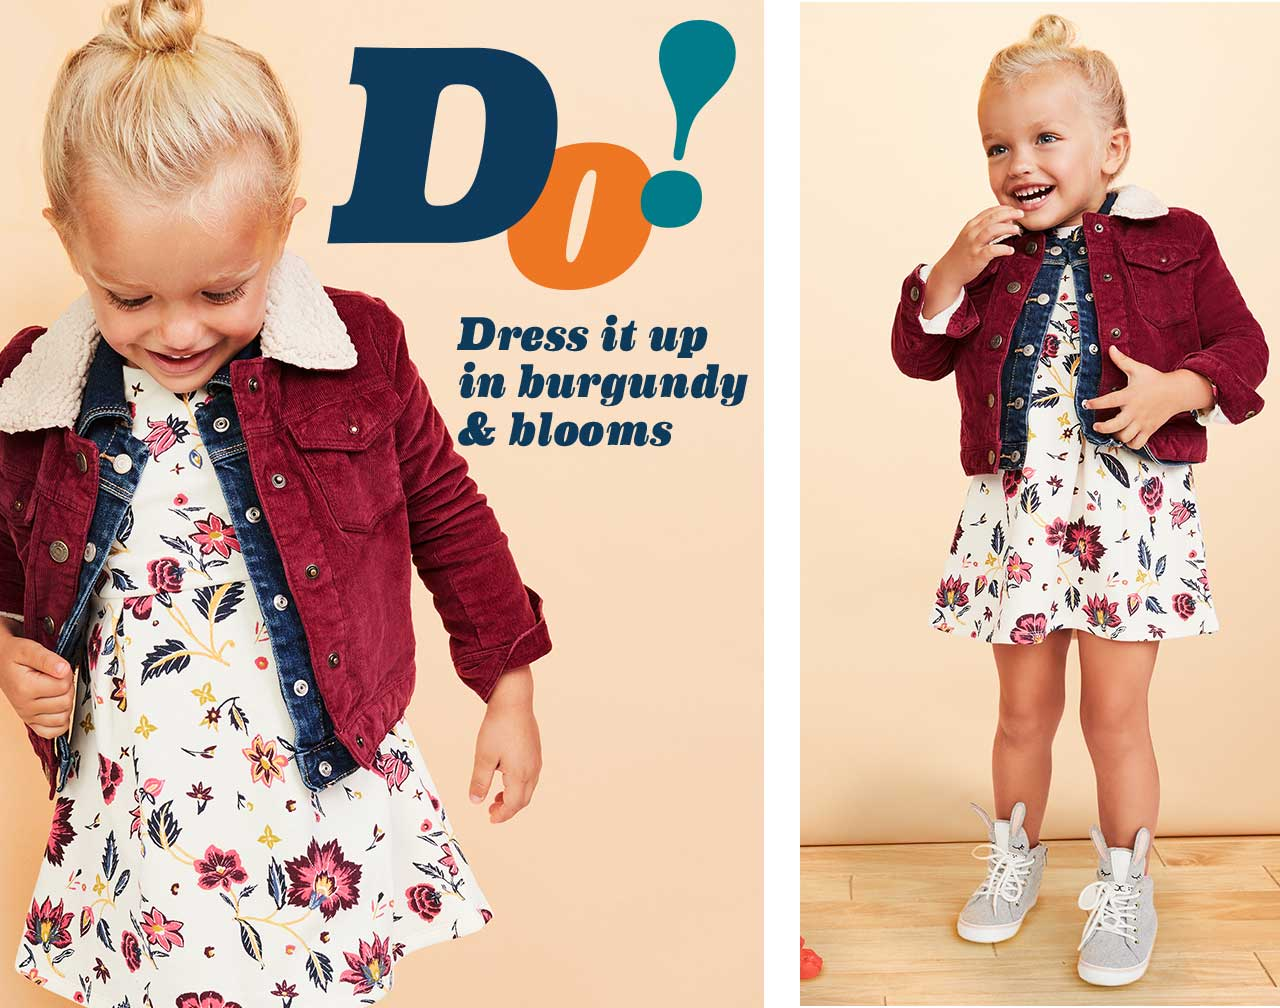 Do! Dress it up in burgundy & blooms